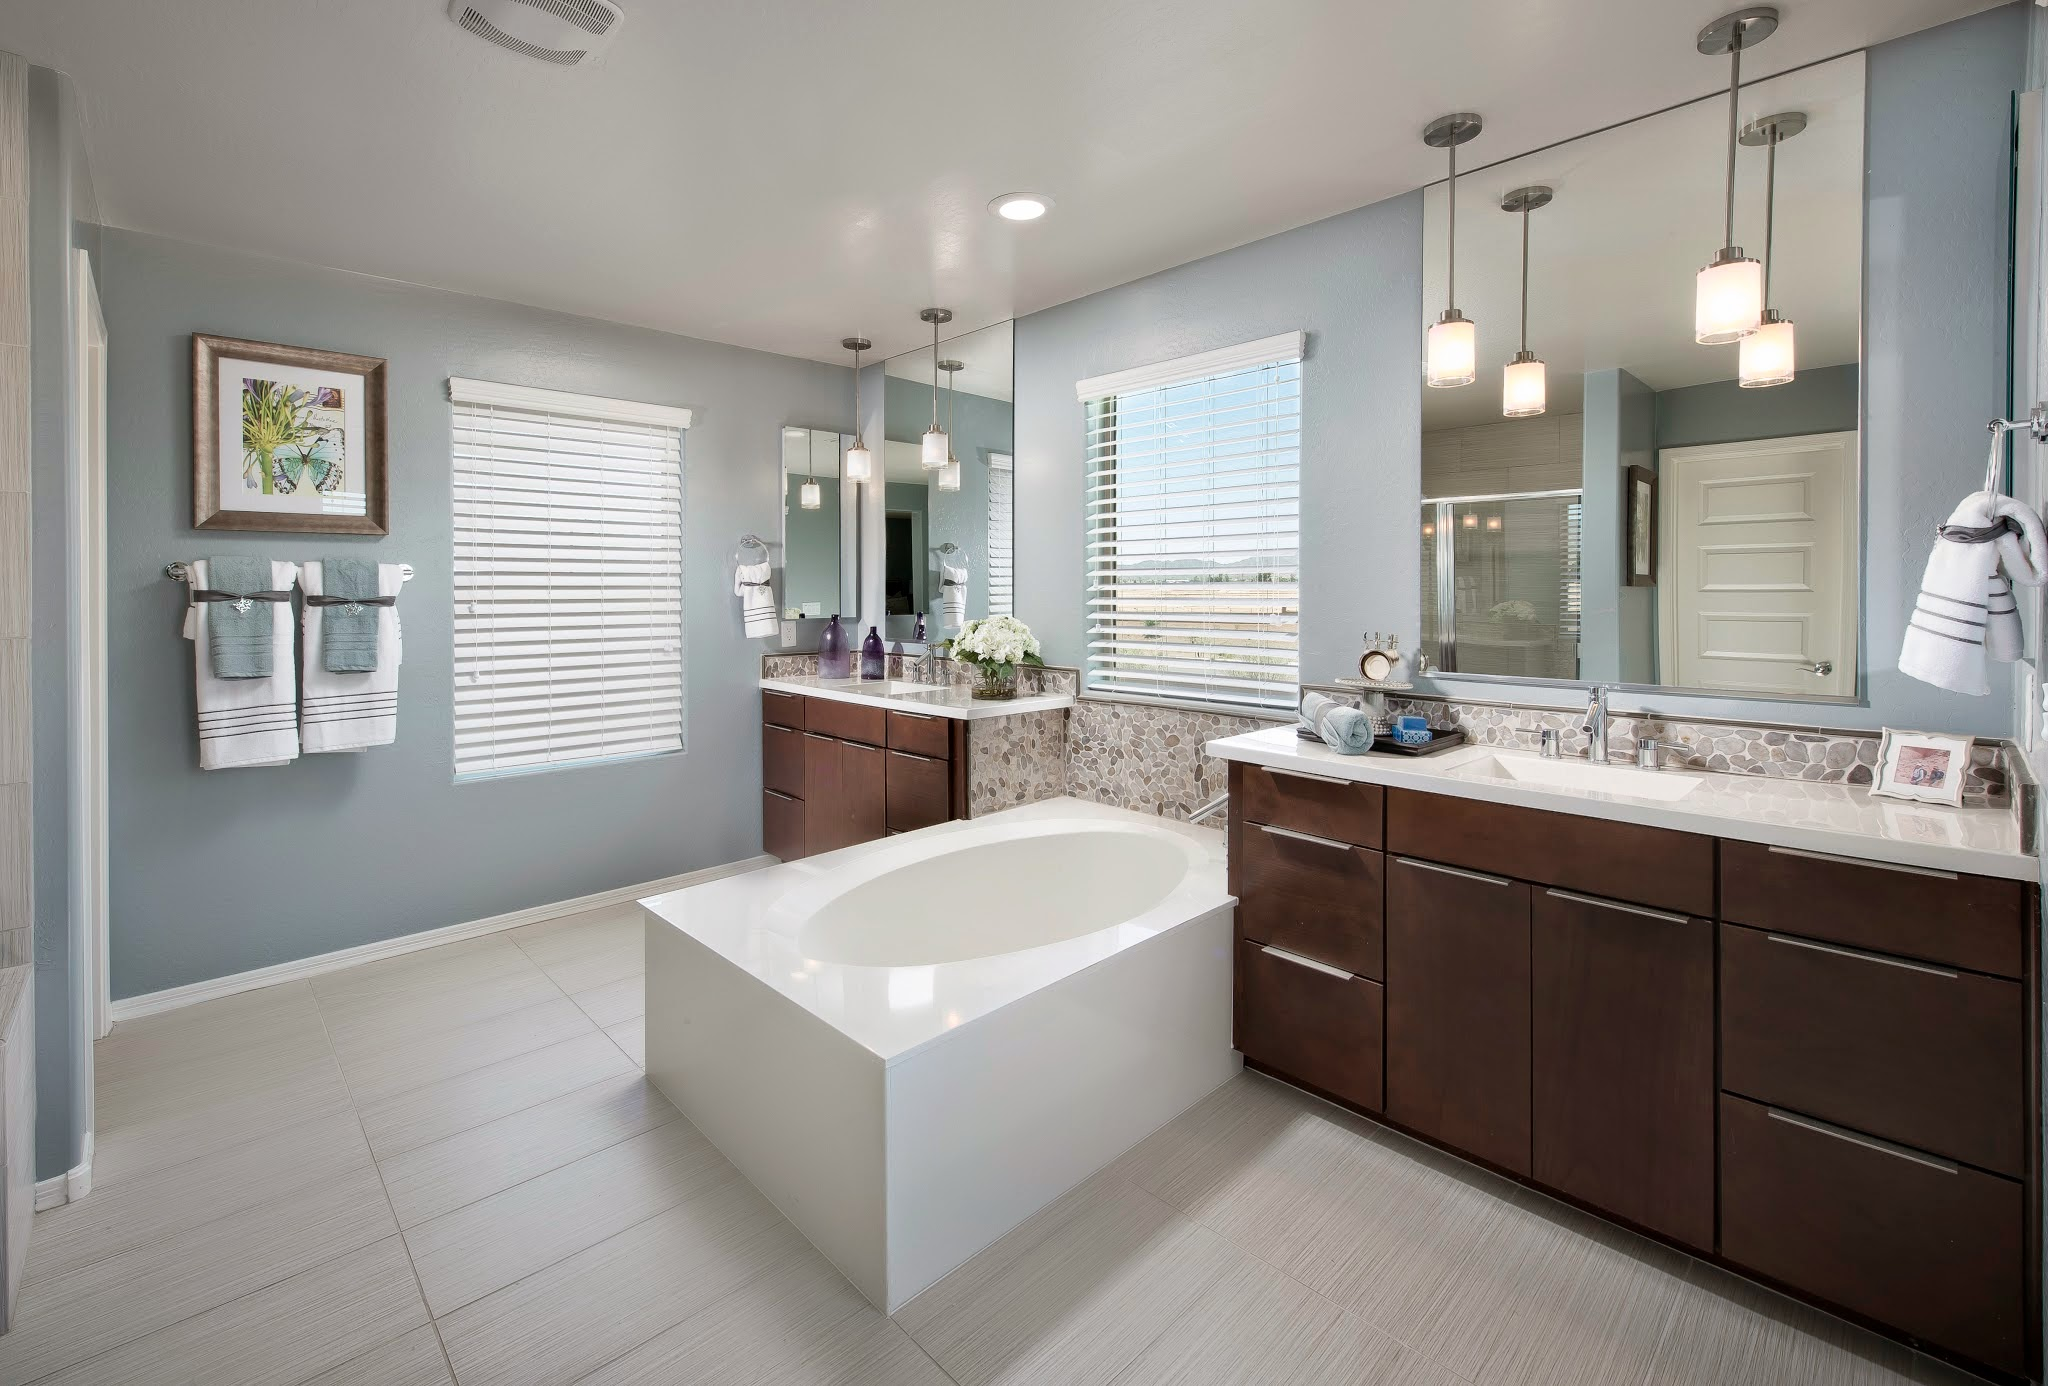 bathroom ideas with Emser Tile Strands Pearl 12 x 24 plus bath up and bathroom cabinet plus sink